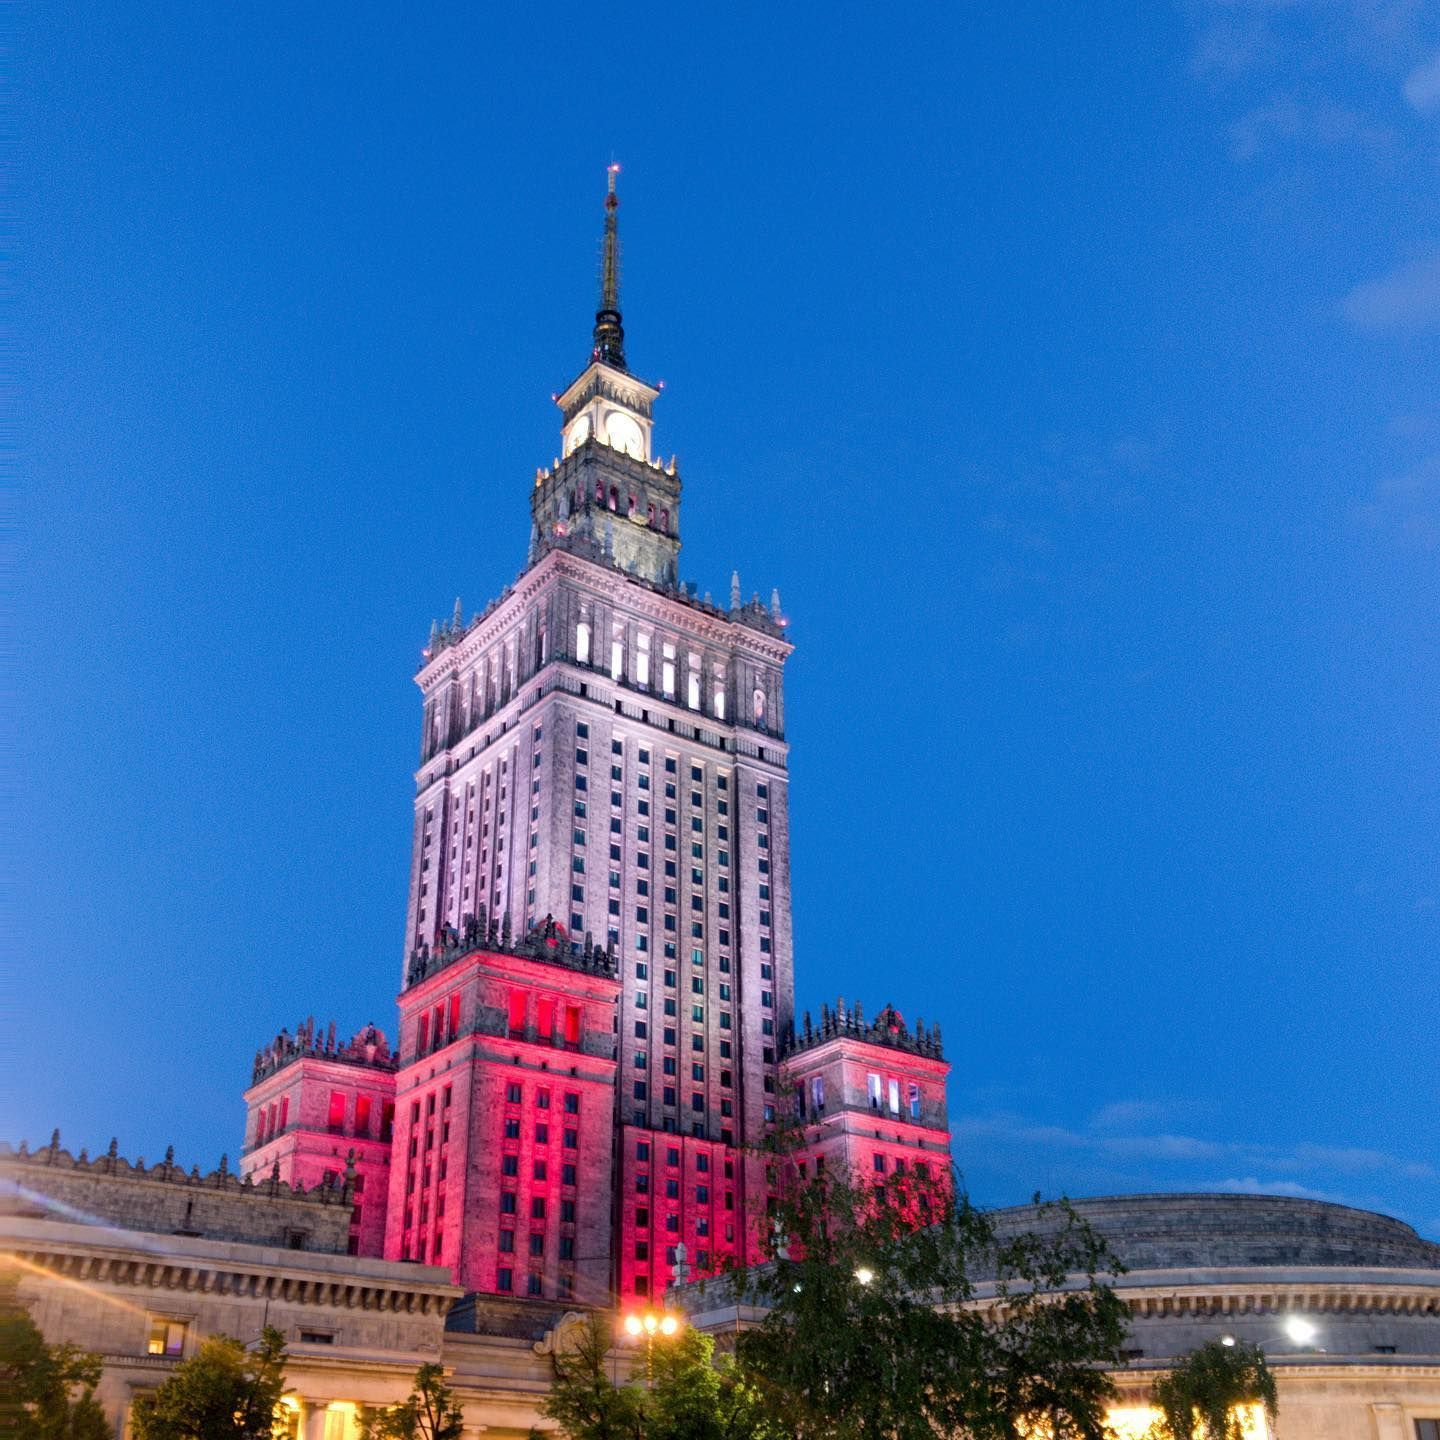 It might be closed but it still looks great. #warsaw #poland